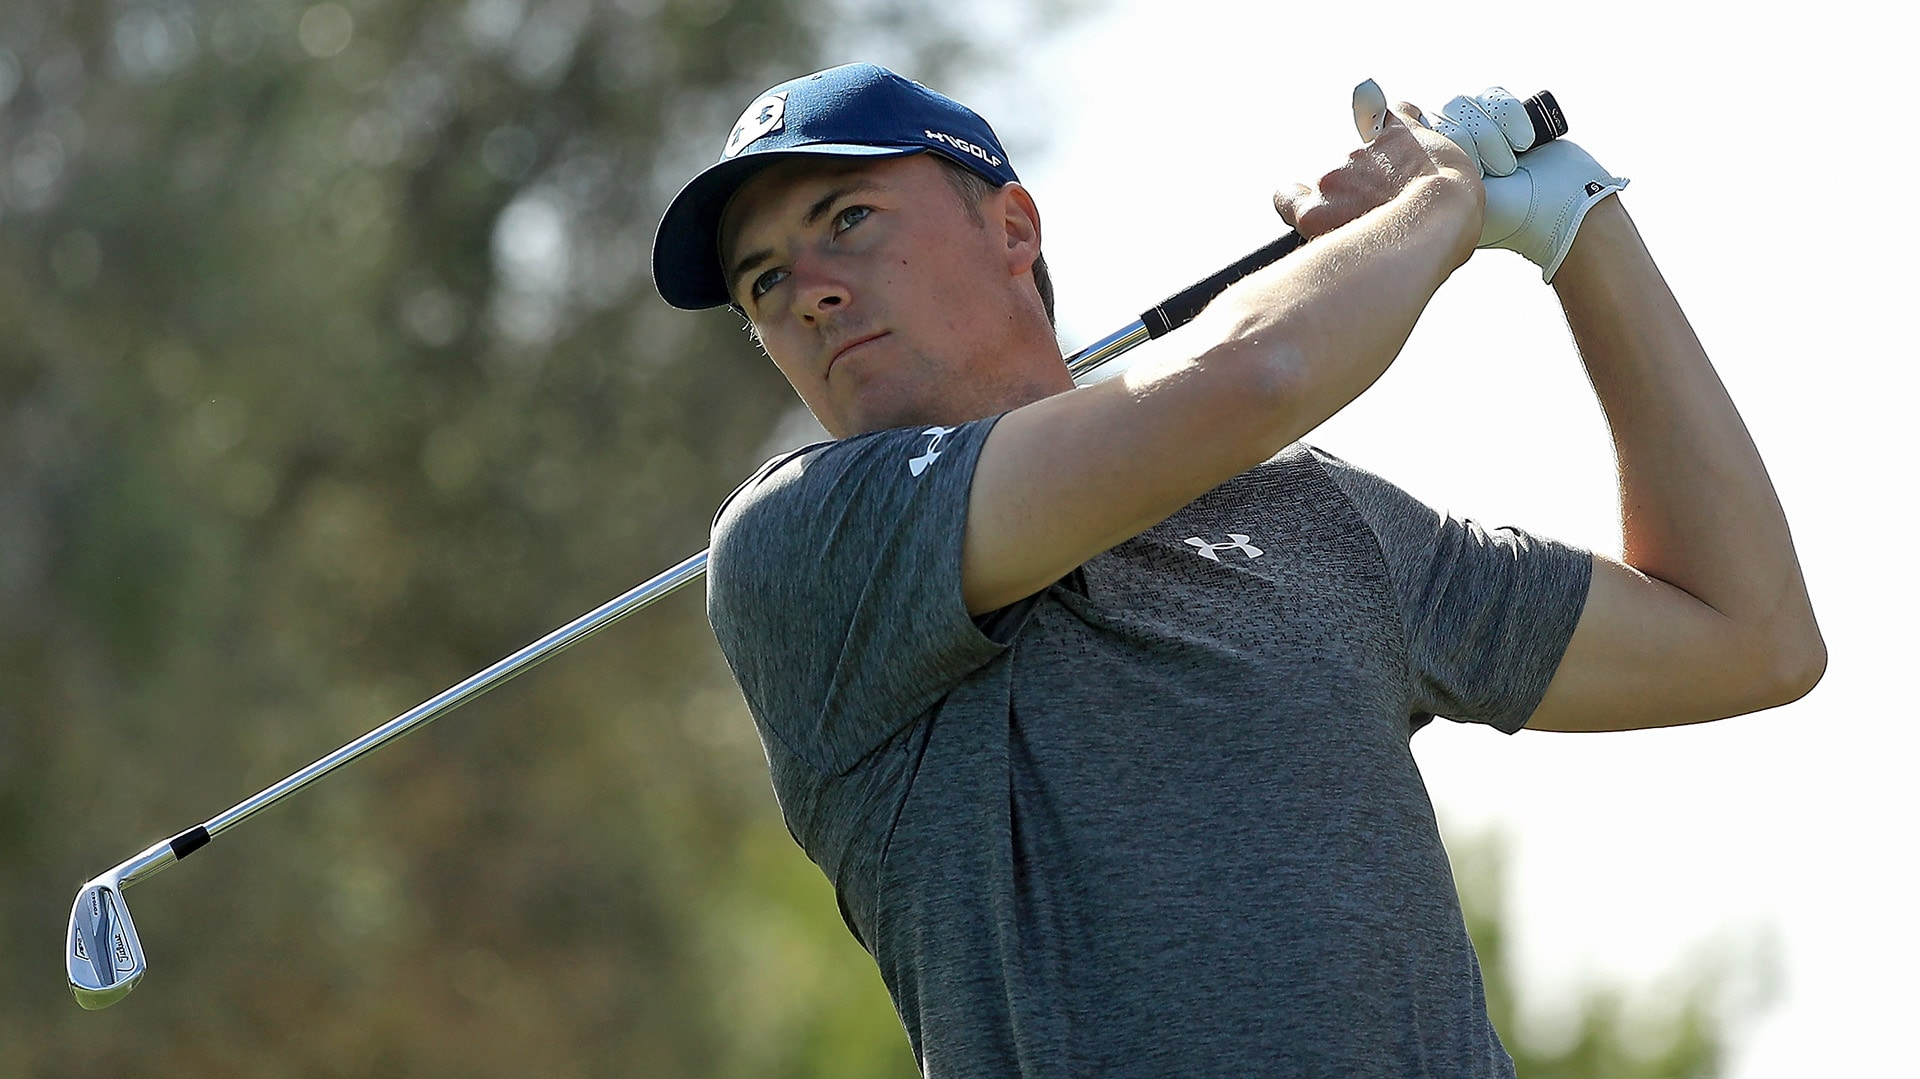 Jordan Spieth at the 2018 Shriners Hospitals for Children Open